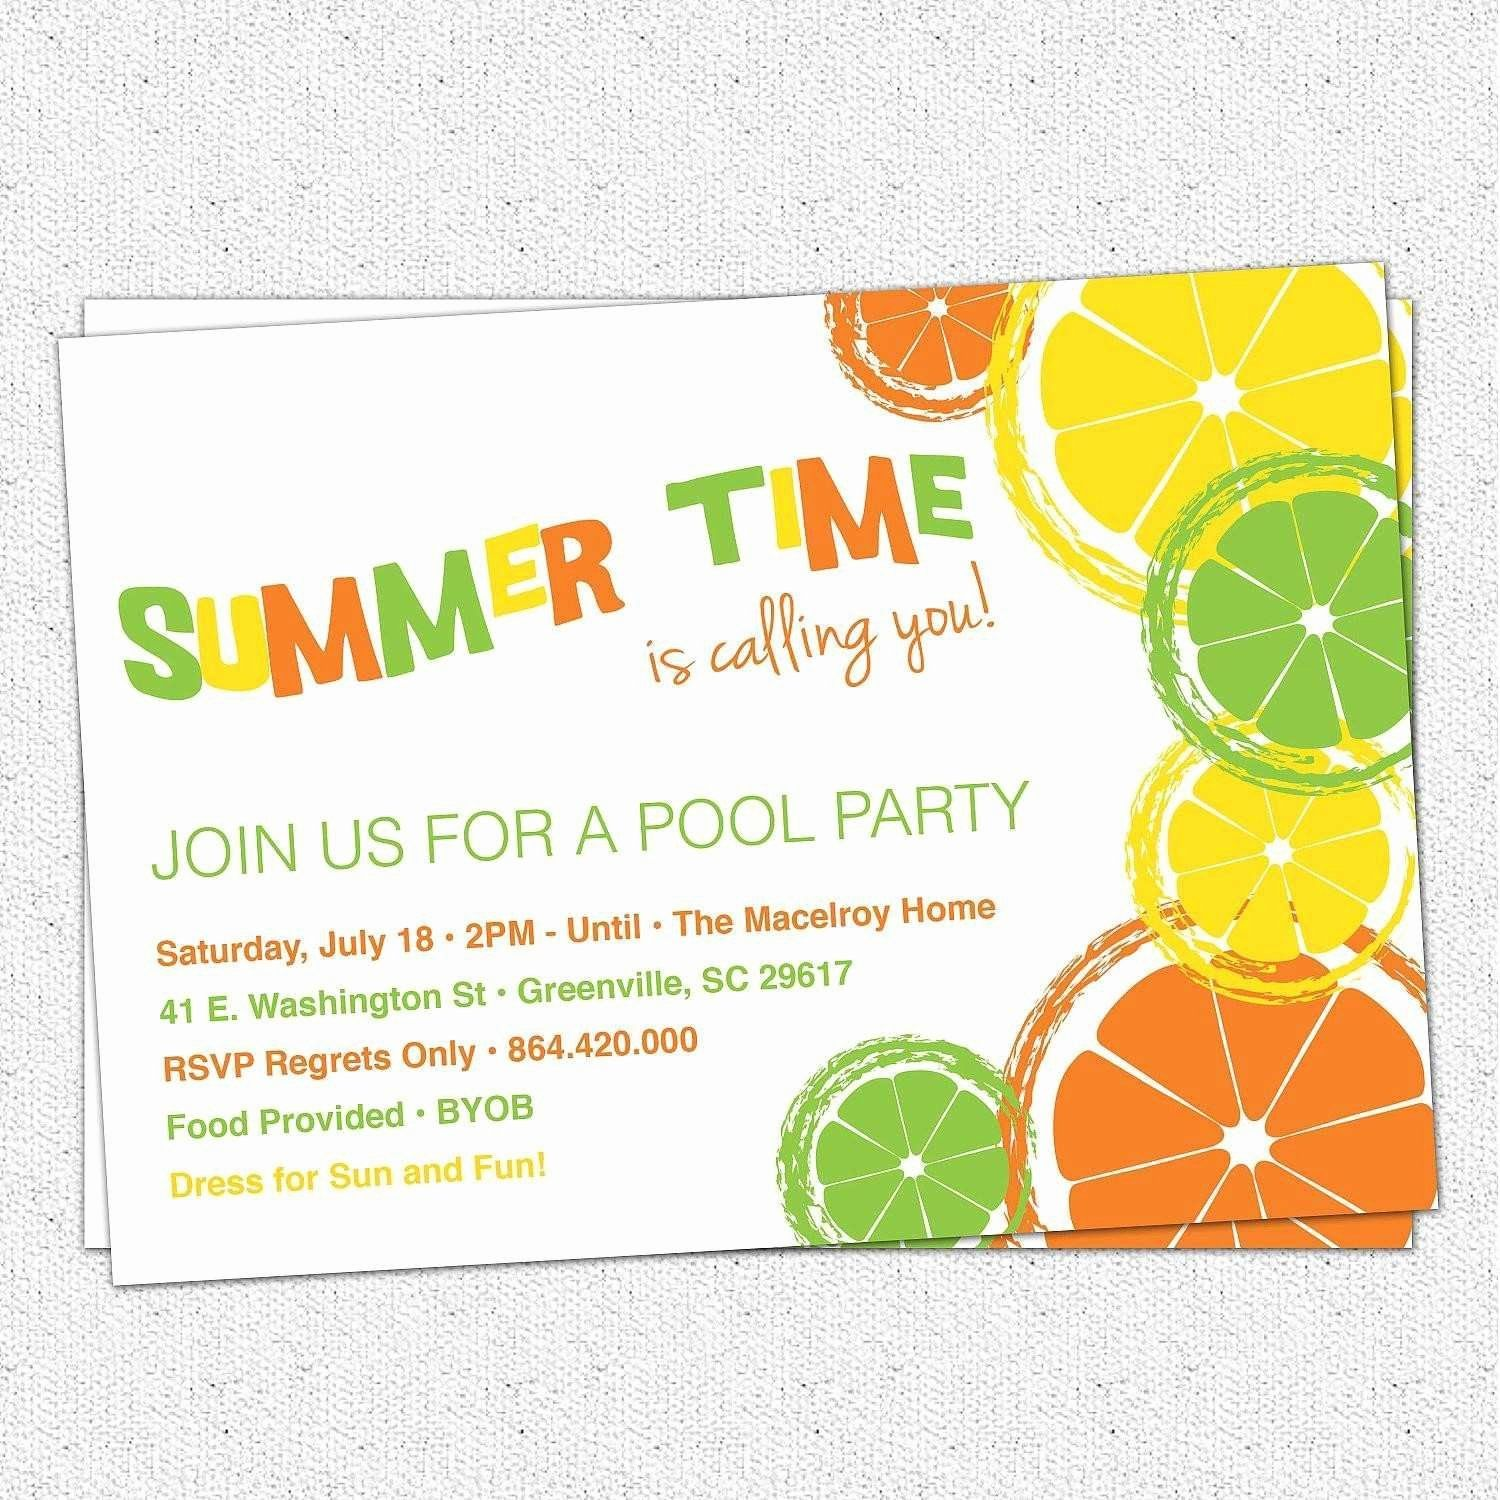 Blank Party Invitation Template Inspirational Awesome Blank Invitation Templates Ks1 In 2020 Party Invite Template Pool Party Invitations Summer Party Invitations